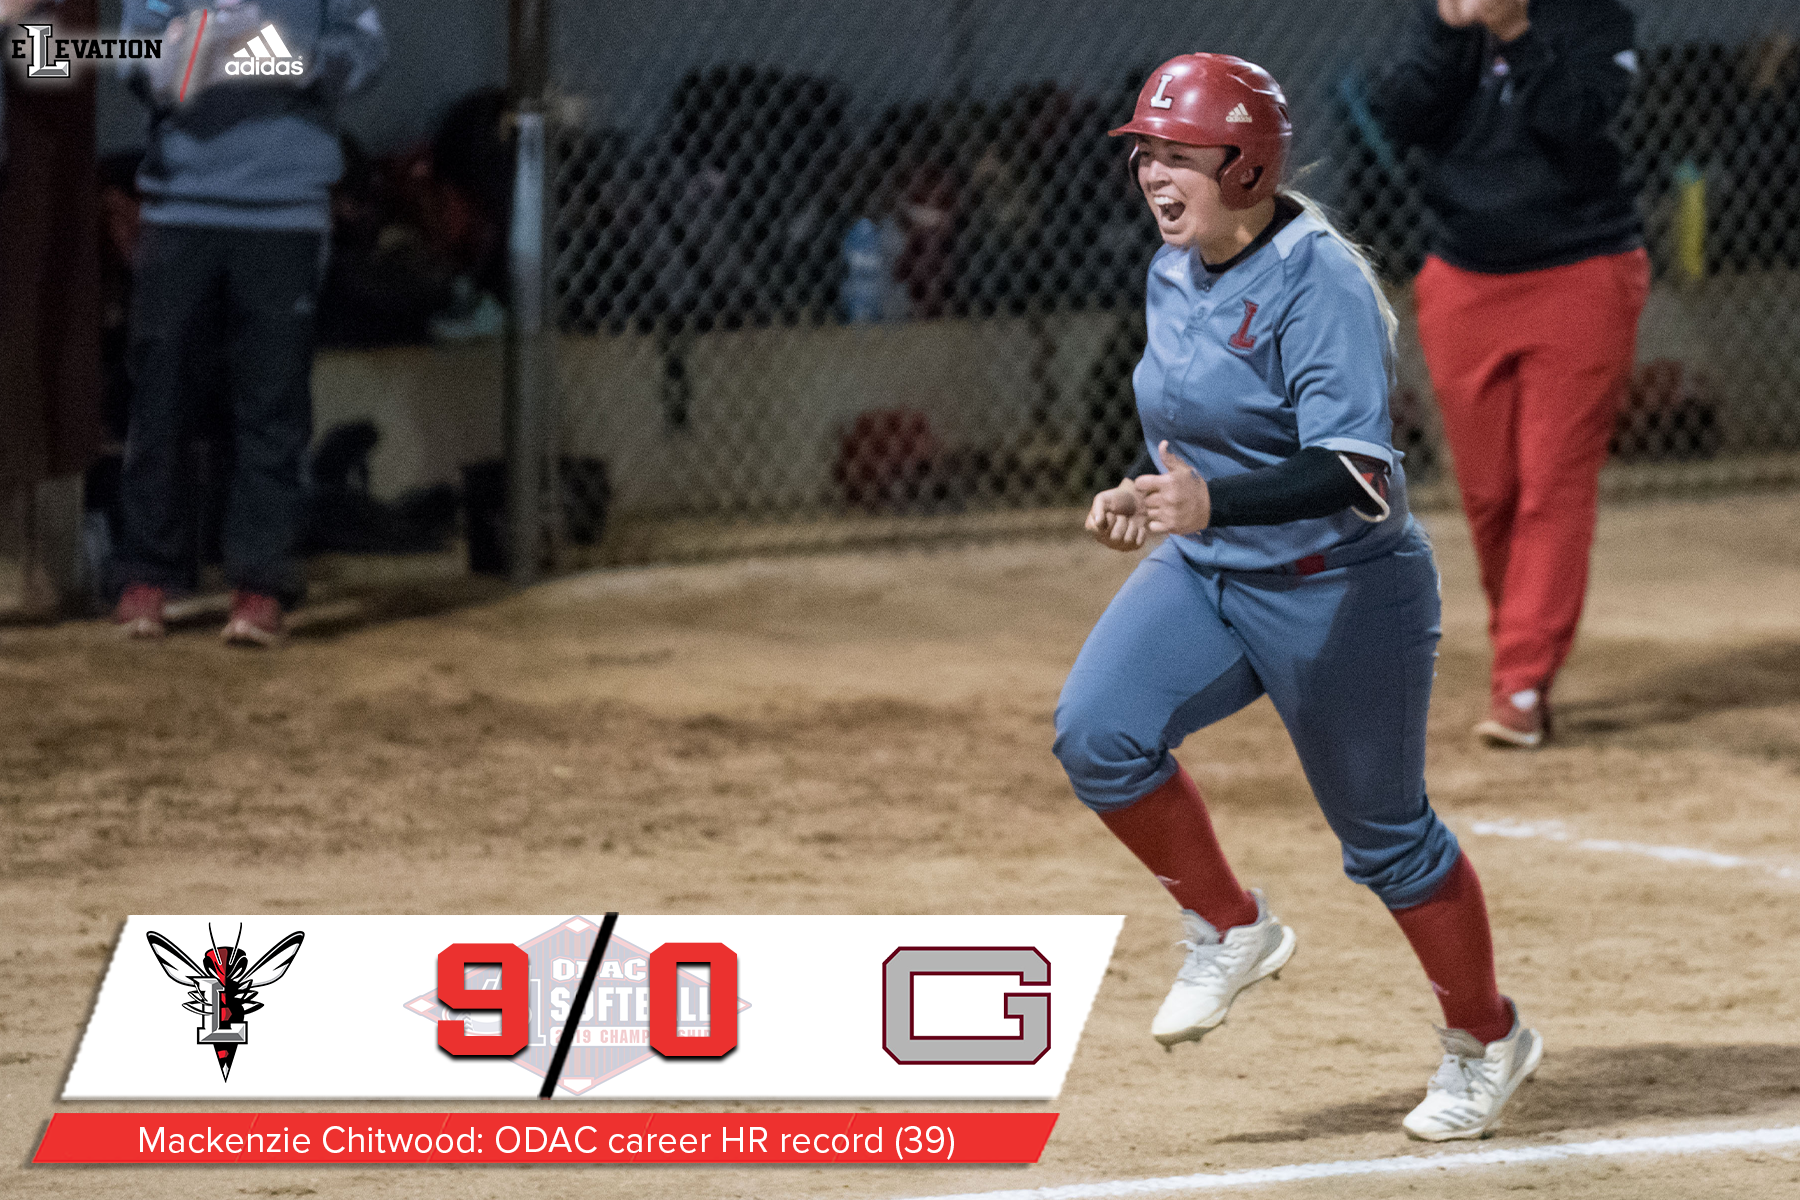 Mackenzie Chitwood rounds the bases after a walkoff home run